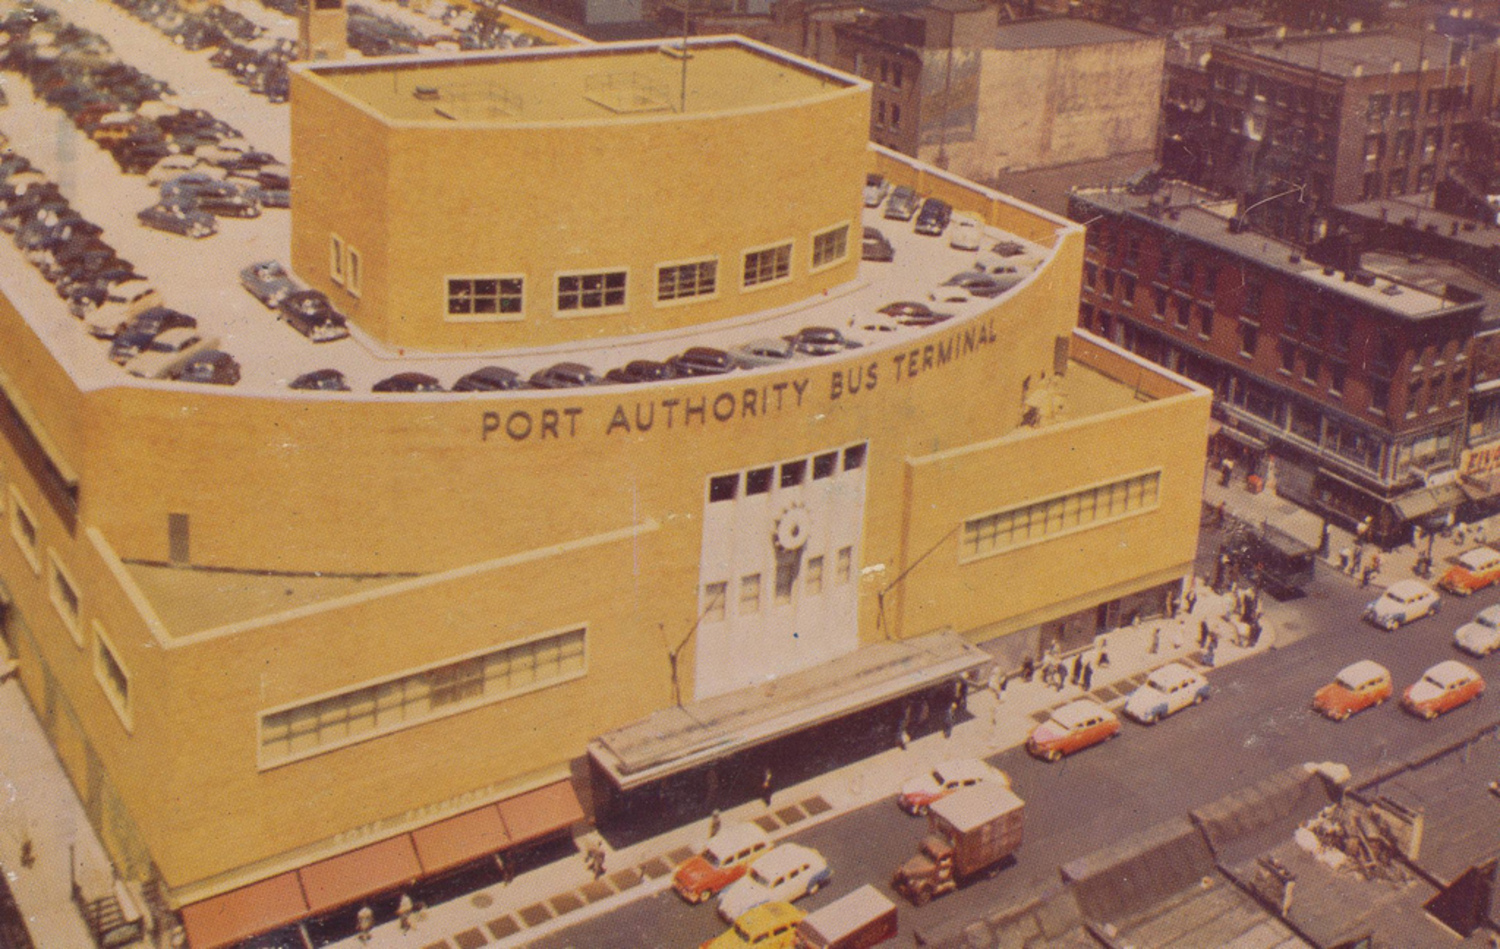 Port Authority Bus Terminal - New York, New York | New York City's newest Bus Terminal.  The postcard has the following written on the back:  from Empire State Building - August 11, 1952